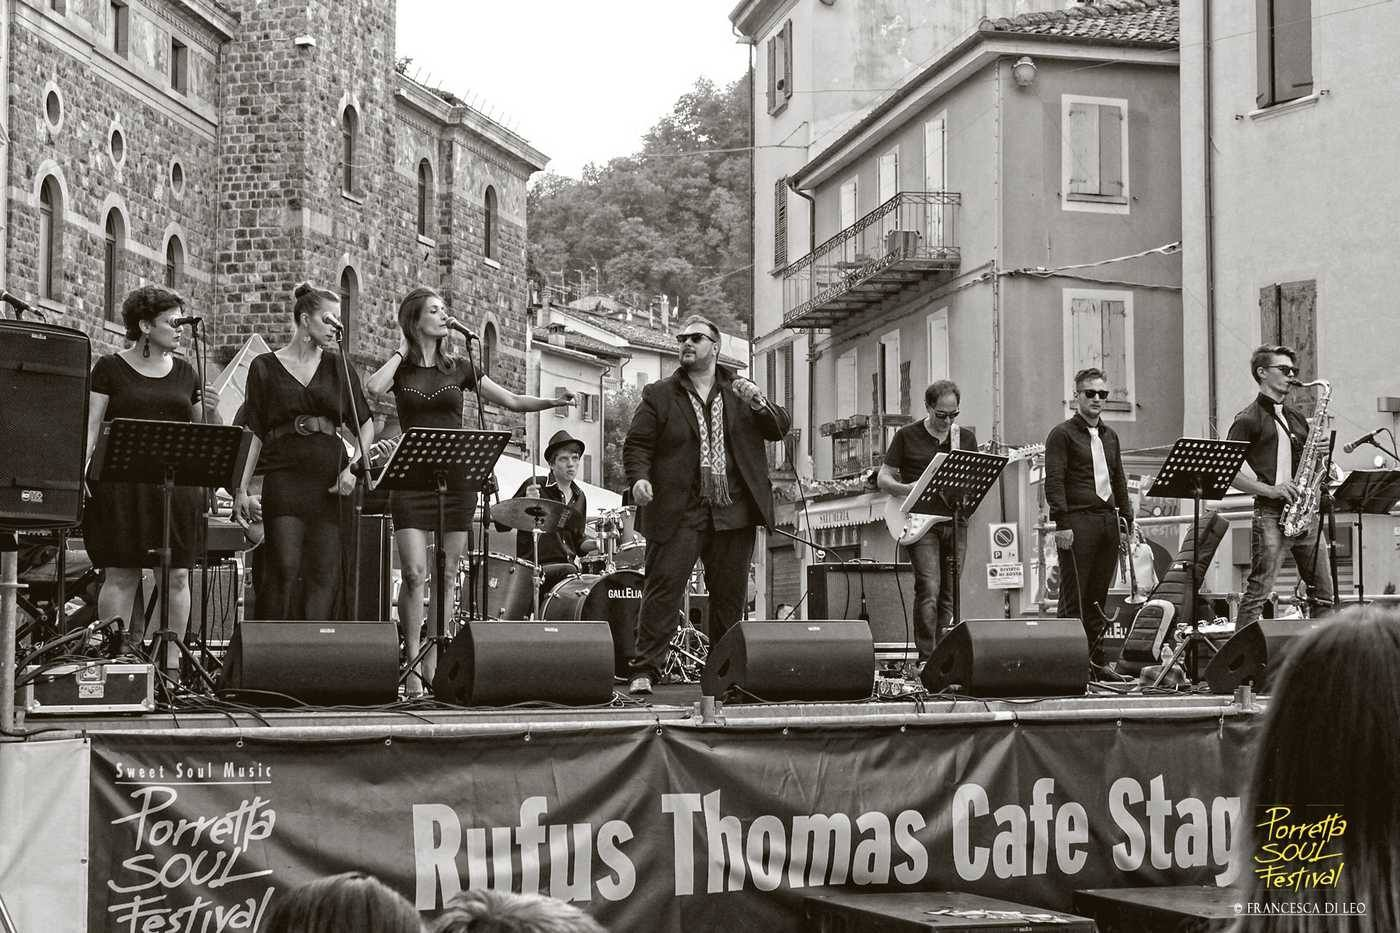 rufus thomas stage.jpg